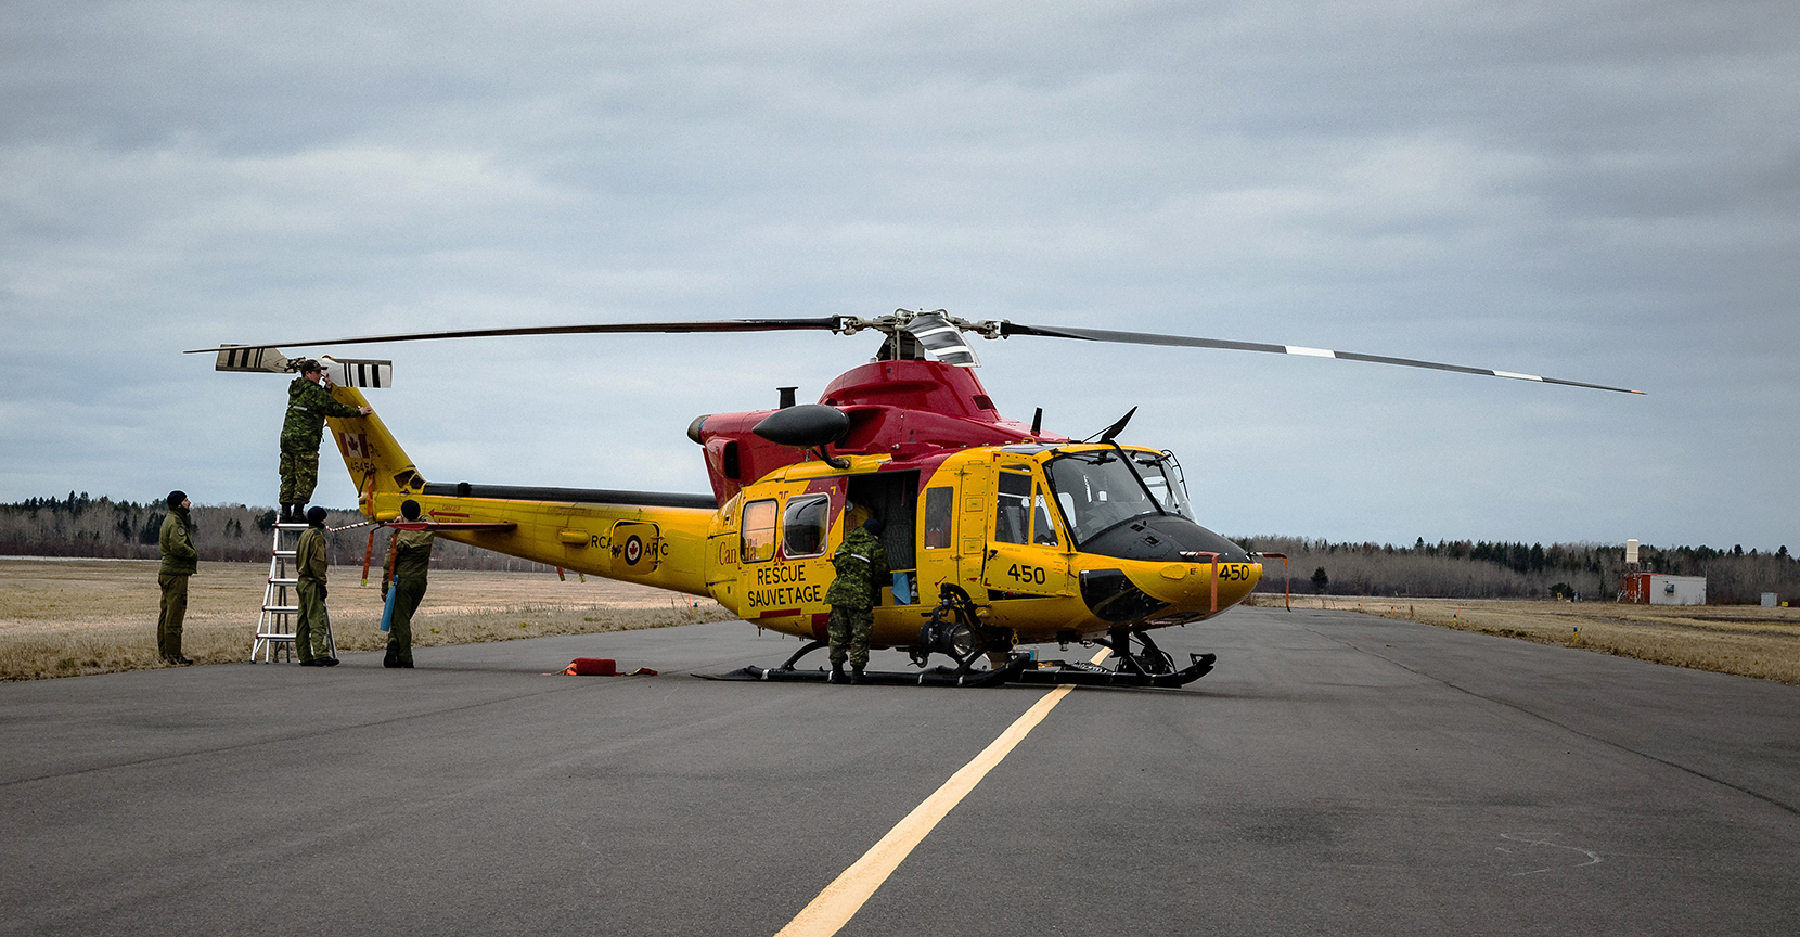 A helicopter painted in yellow and red search and rescue colours rests on the tarmac with people wearing military uniforms working on or near it.